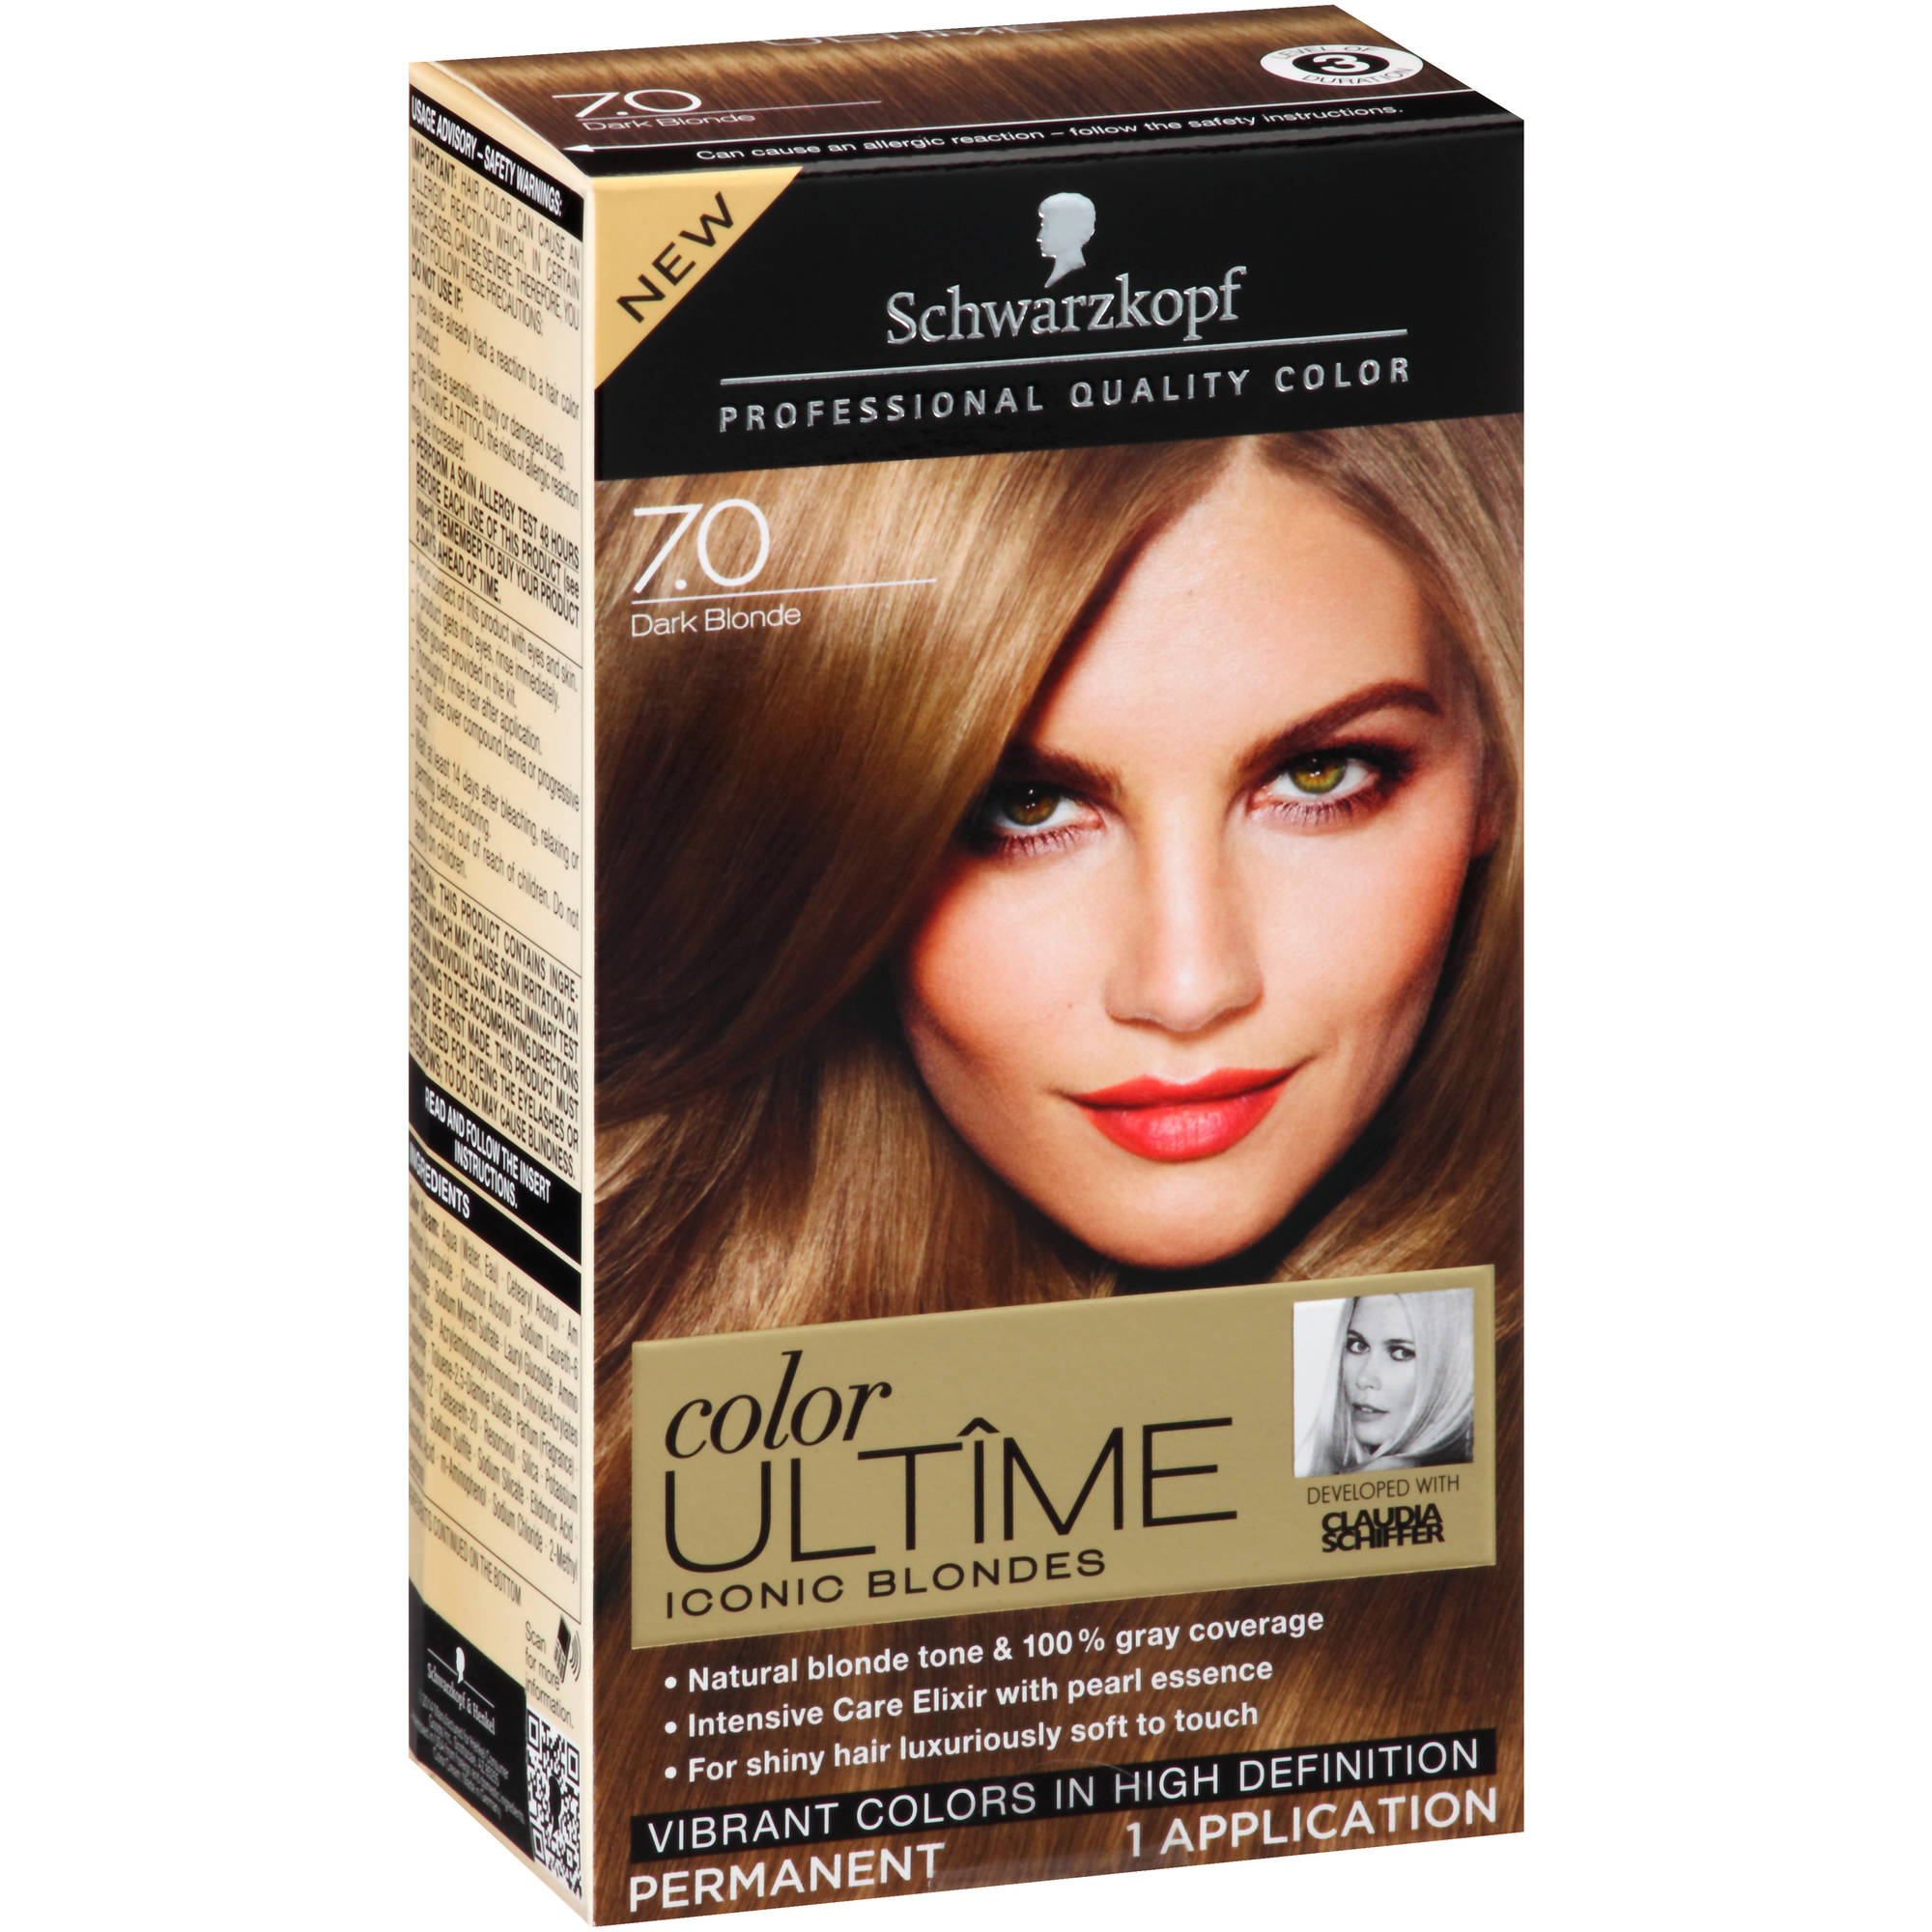 Paul Mitchell Hair Color The Color Color 7wb Warm Blonde